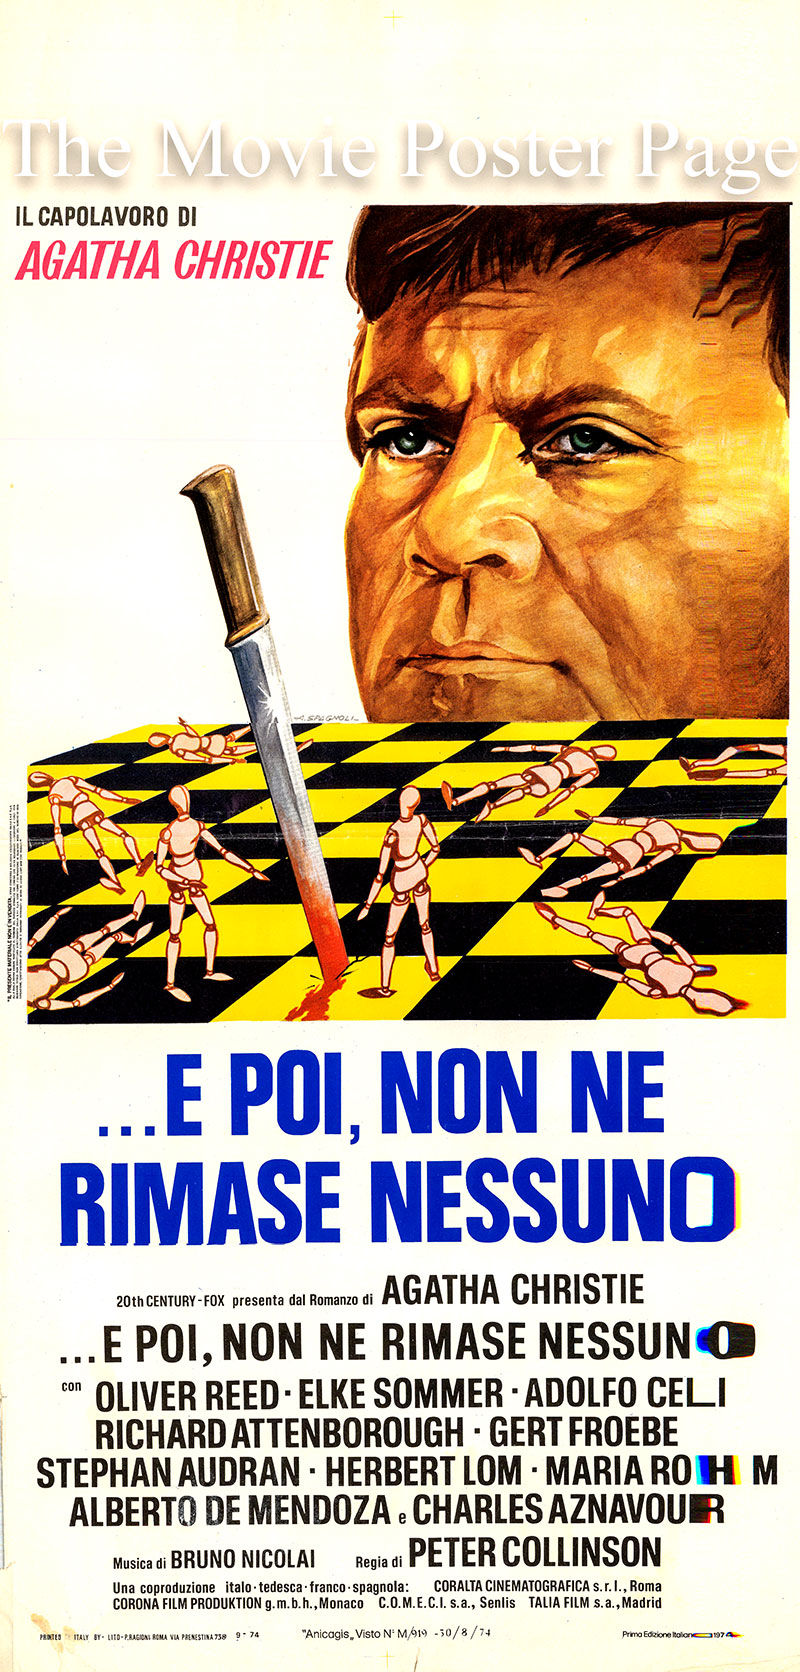 Pictured is an Italian locandina promotional poster for the 1974 Peter Collinson film And Then There Were None starring Oliver Reed as Hugh Lombard.